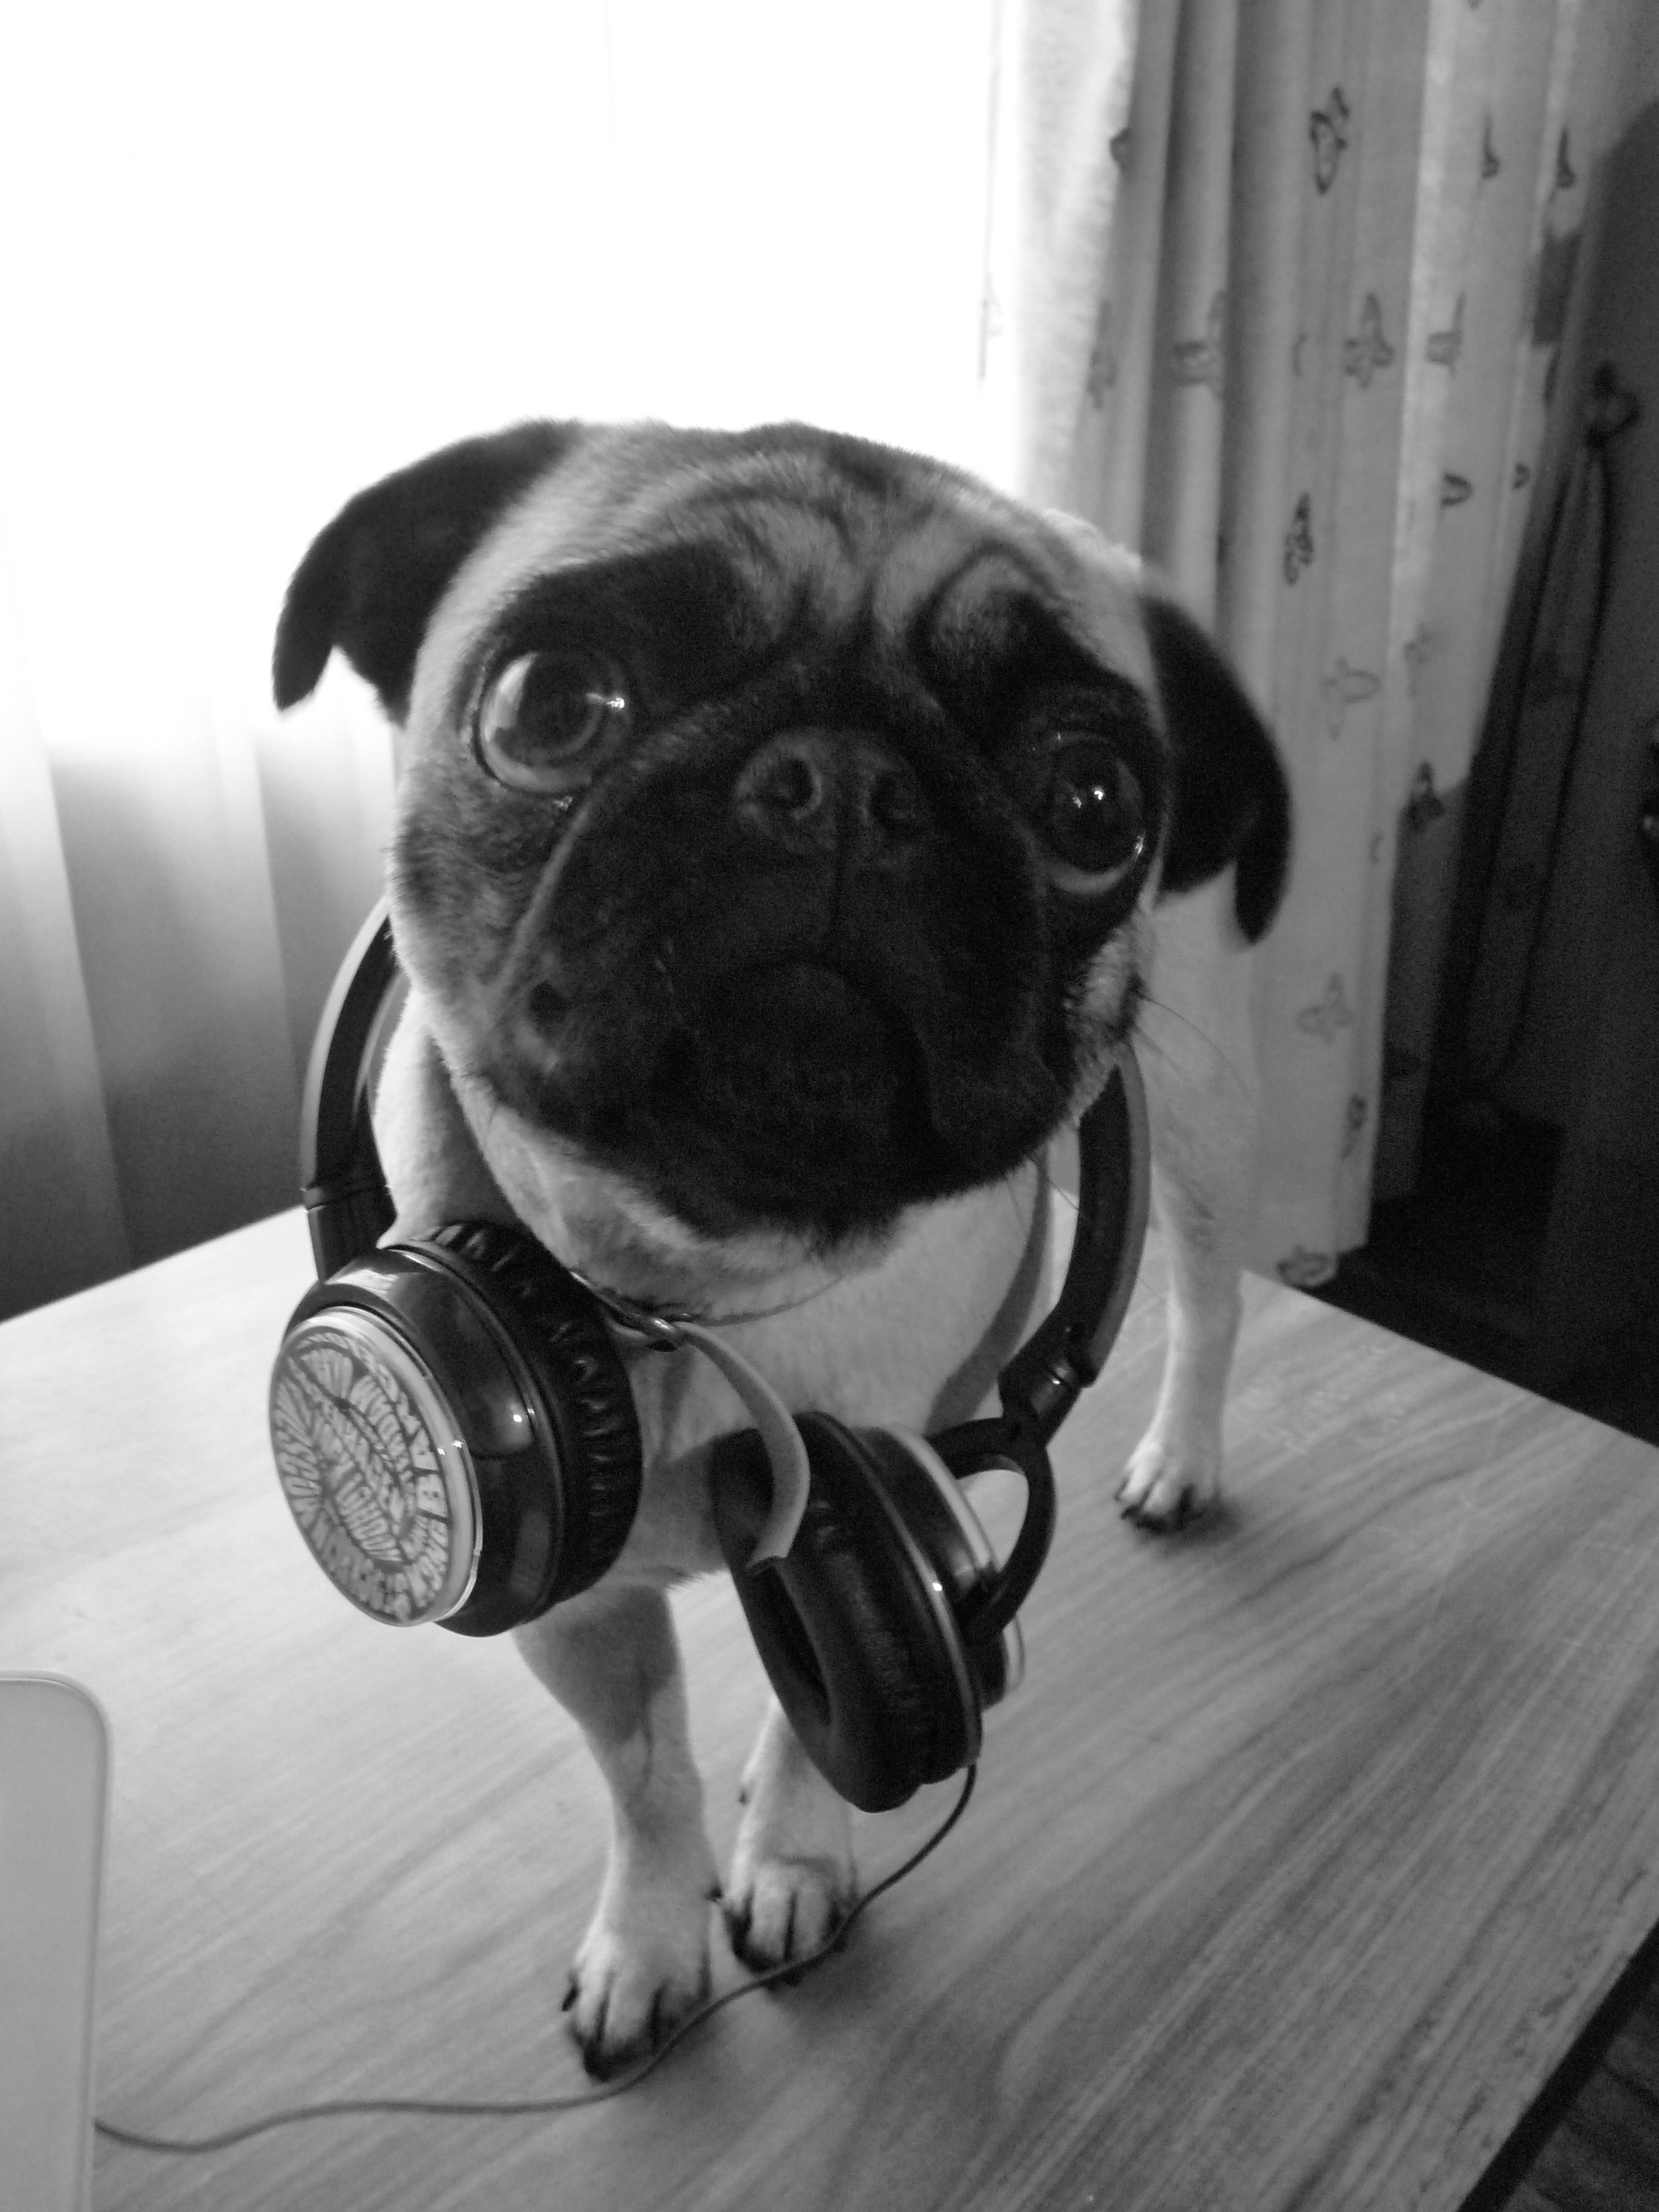 Pug Headphones With Images Work With Animals Animal Pin